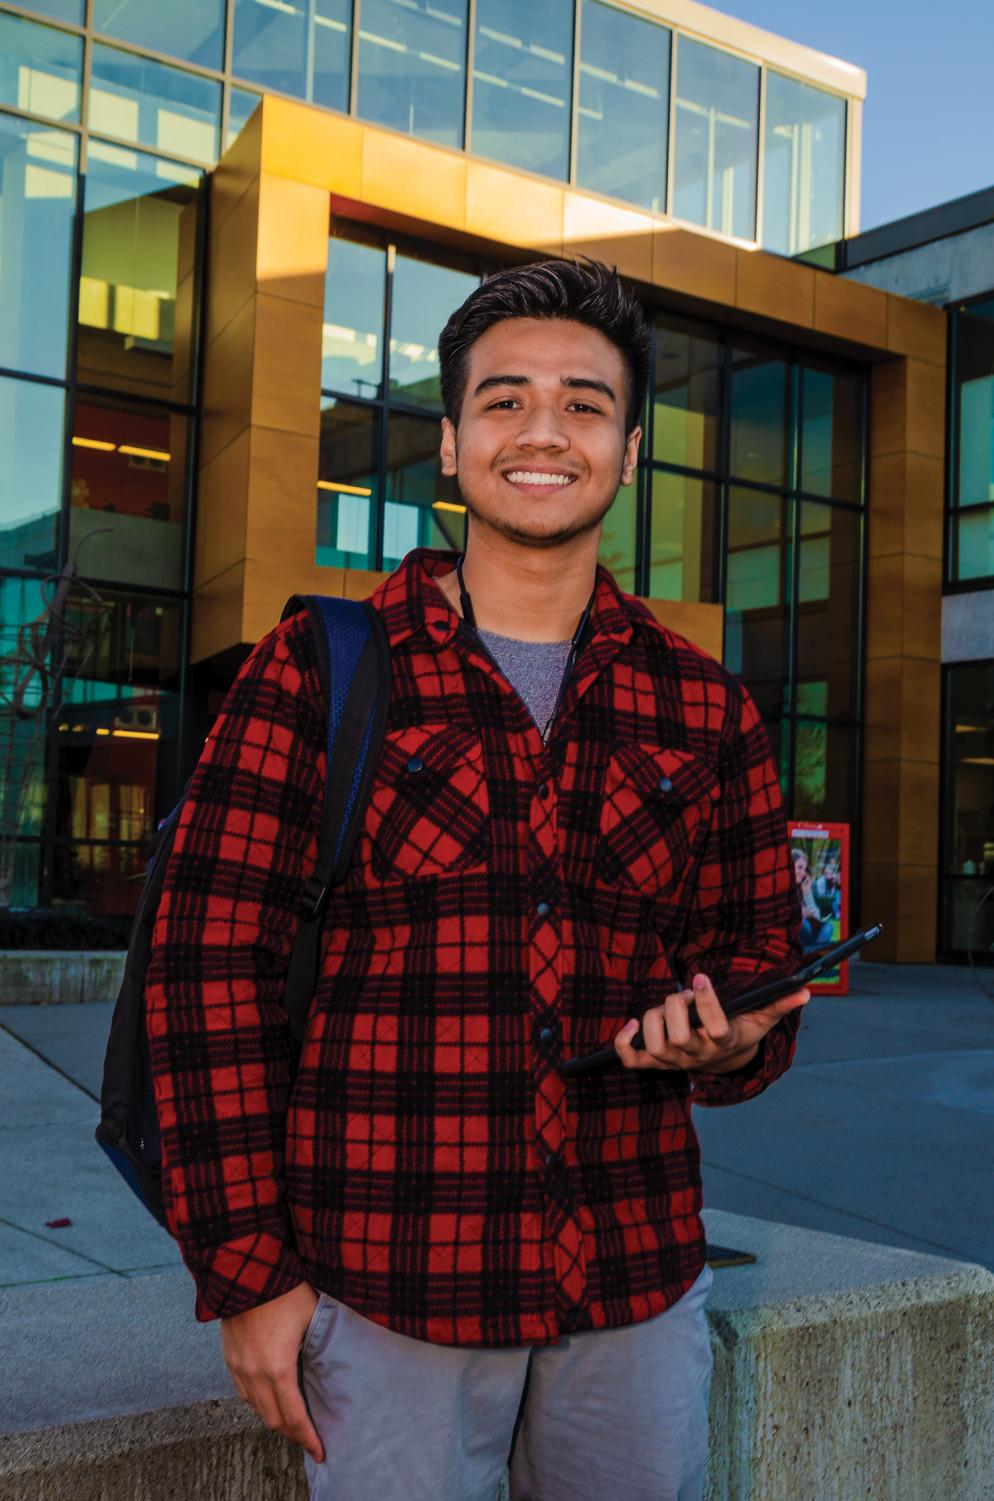 Ahmad Zaferi, biomedical engineering student at EvCC recounts his journey from boarding school to independent college life.